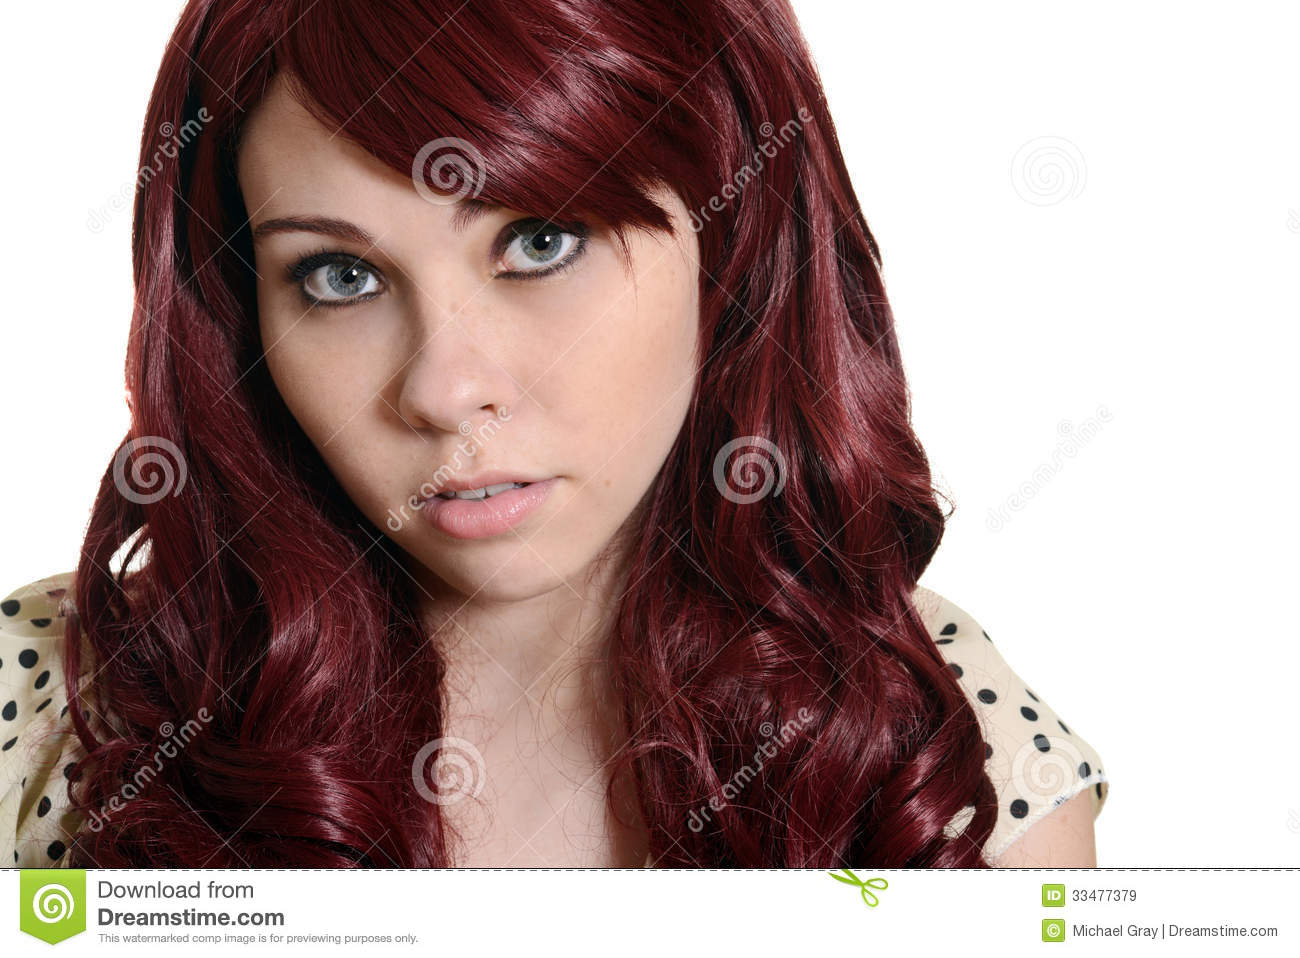 red head teen girl model picture gallery